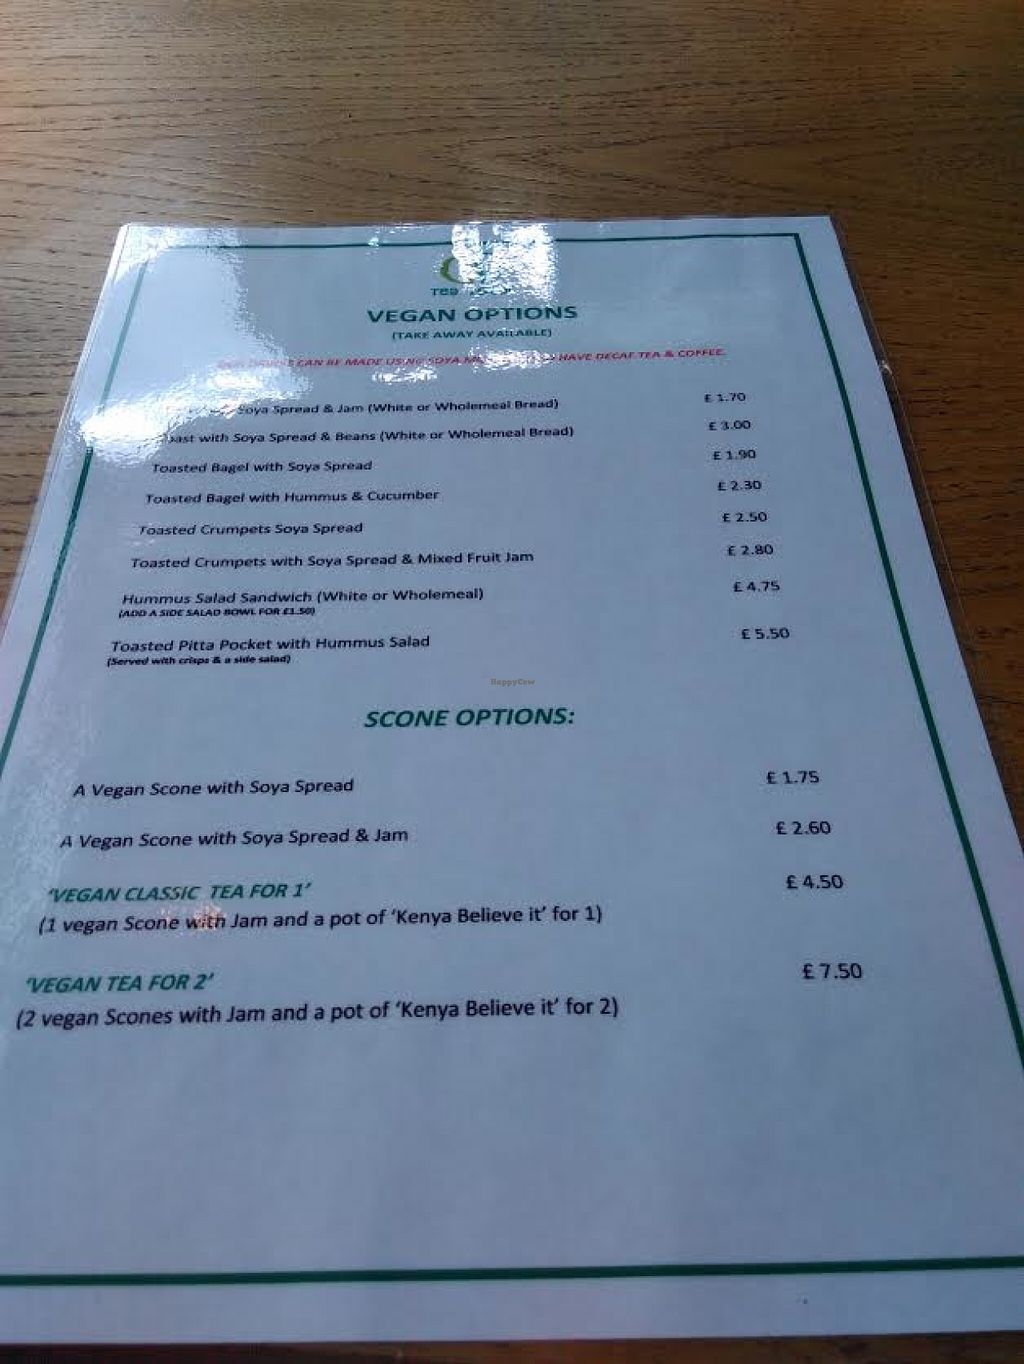 """Photo of Tea Total  by <a href=""""/members/profile/starcide"""">starcide</a> <br/>S shot of the separate vegan menu <br/> June 10, 2016  - <a href='/contact/abuse/image/74544/153251'>Report</a>"""